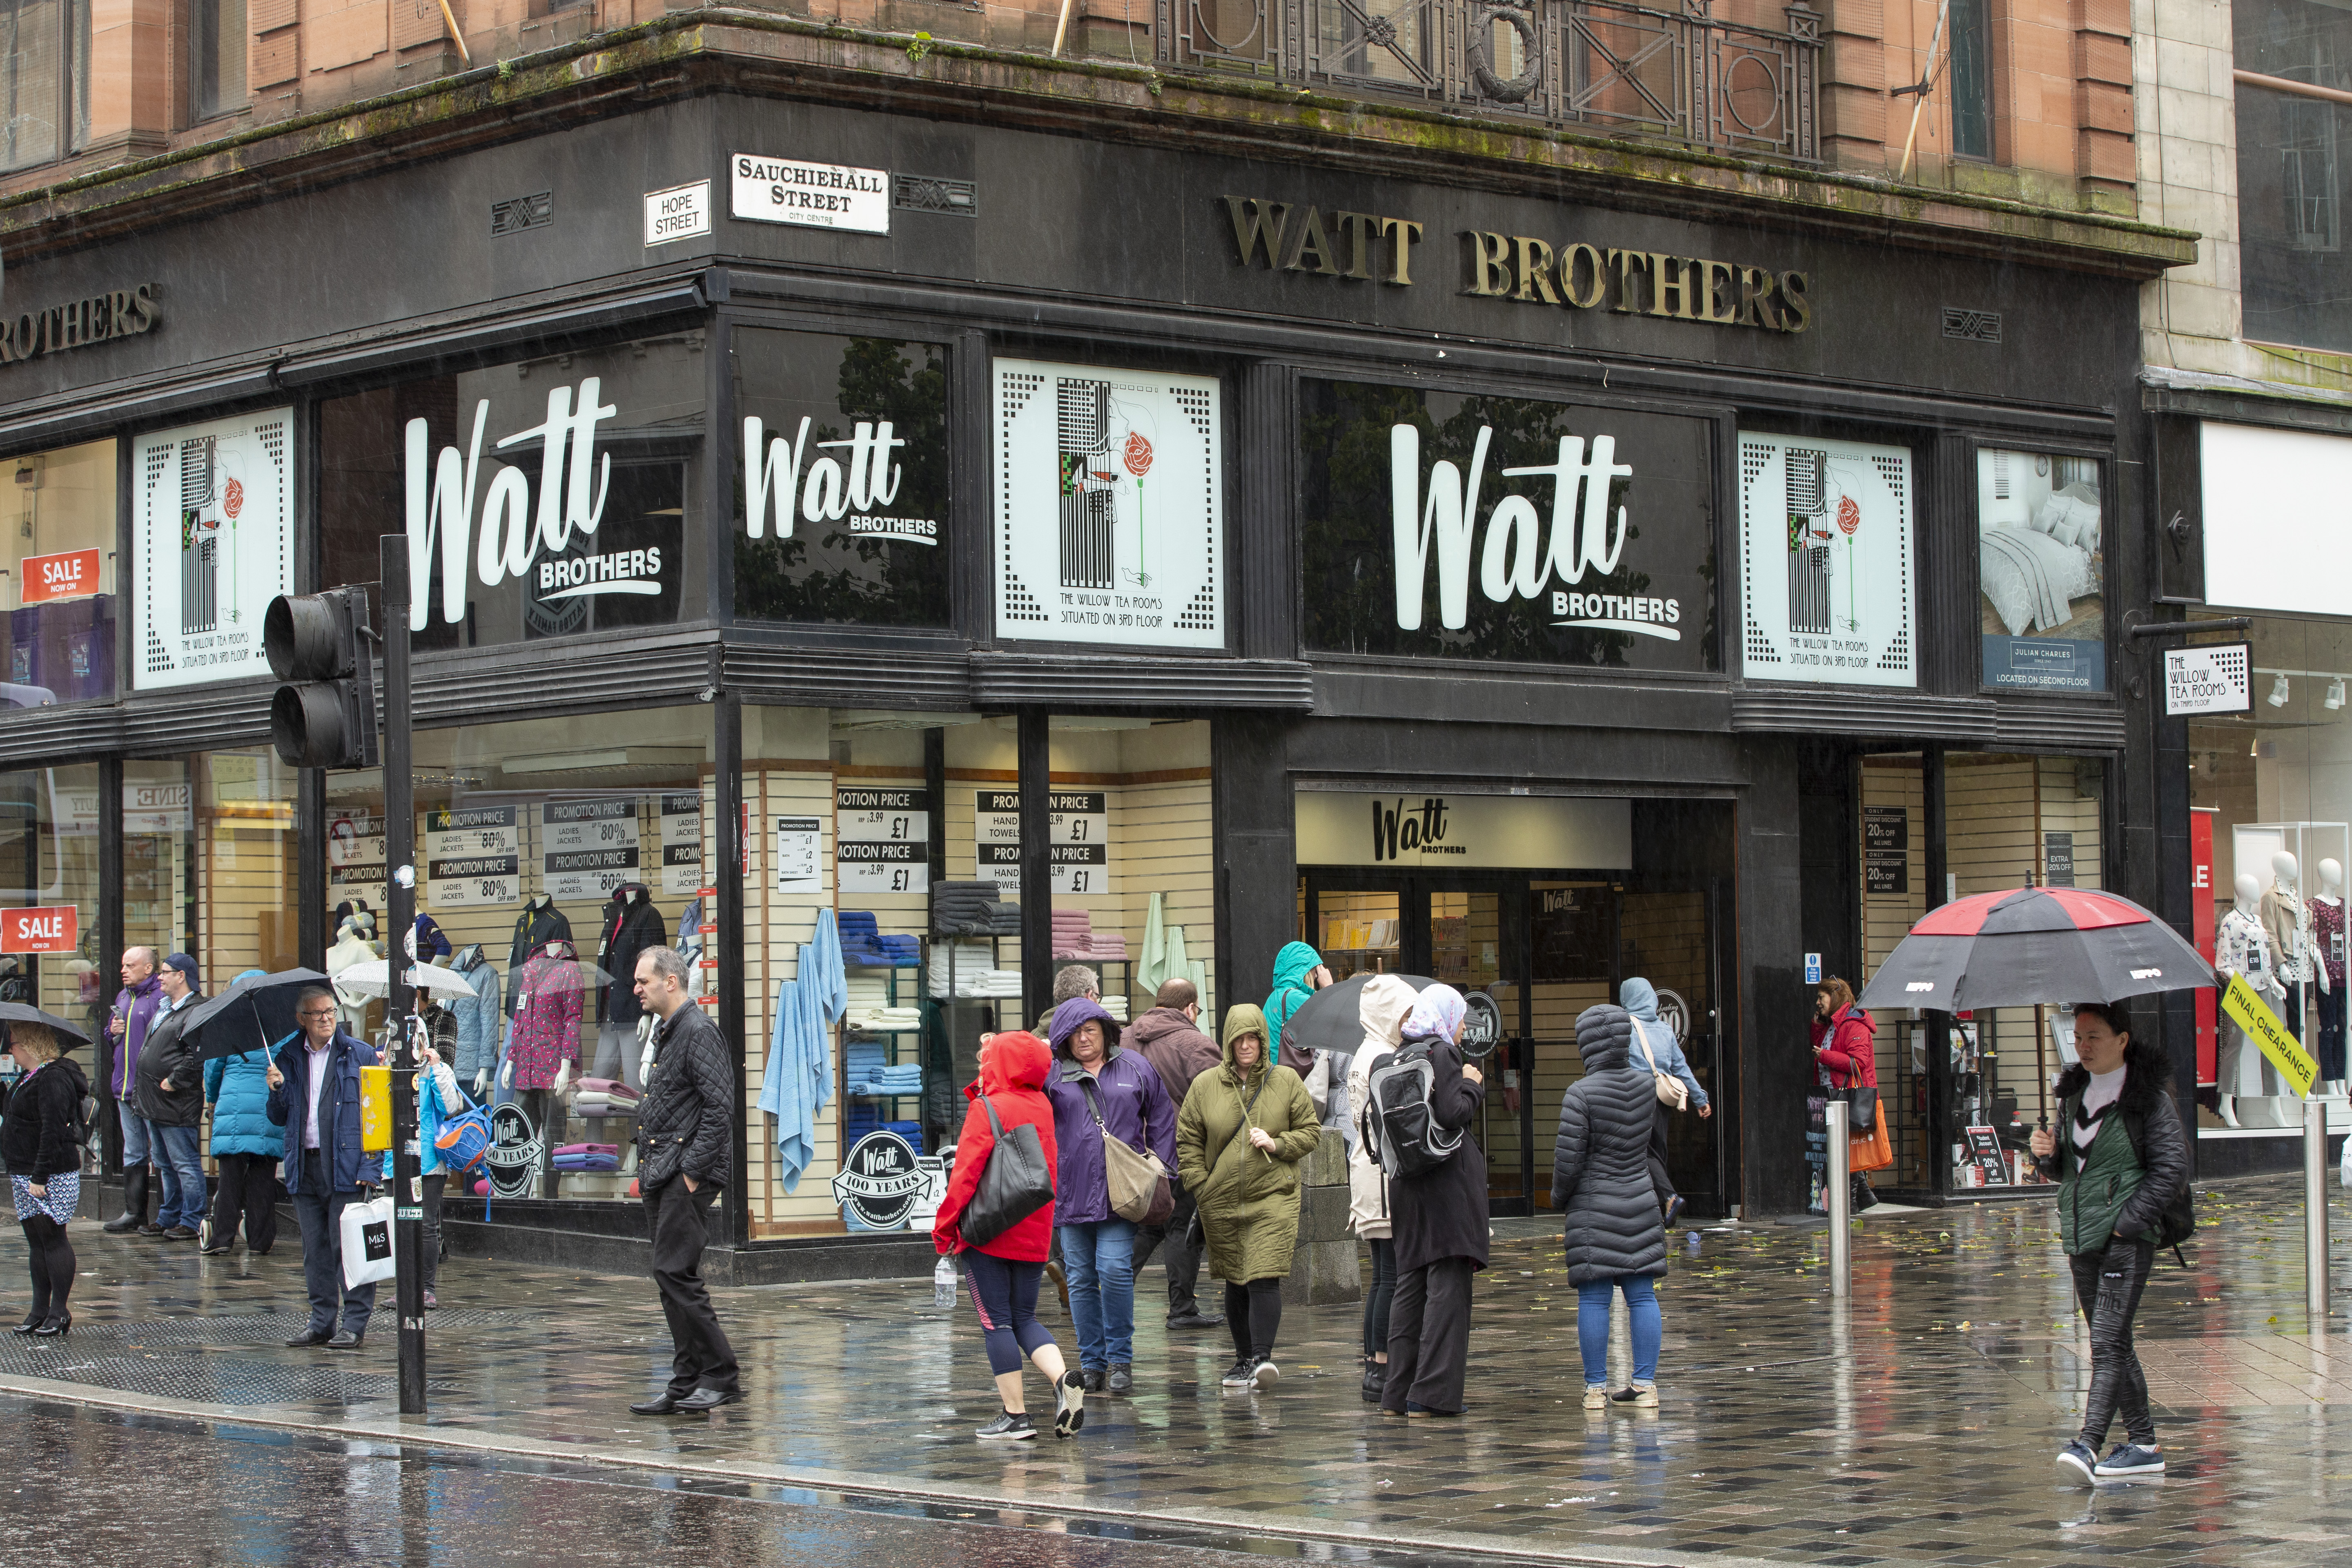 Watt Brothers, celebrating its centenary, has the air of a closing down sale